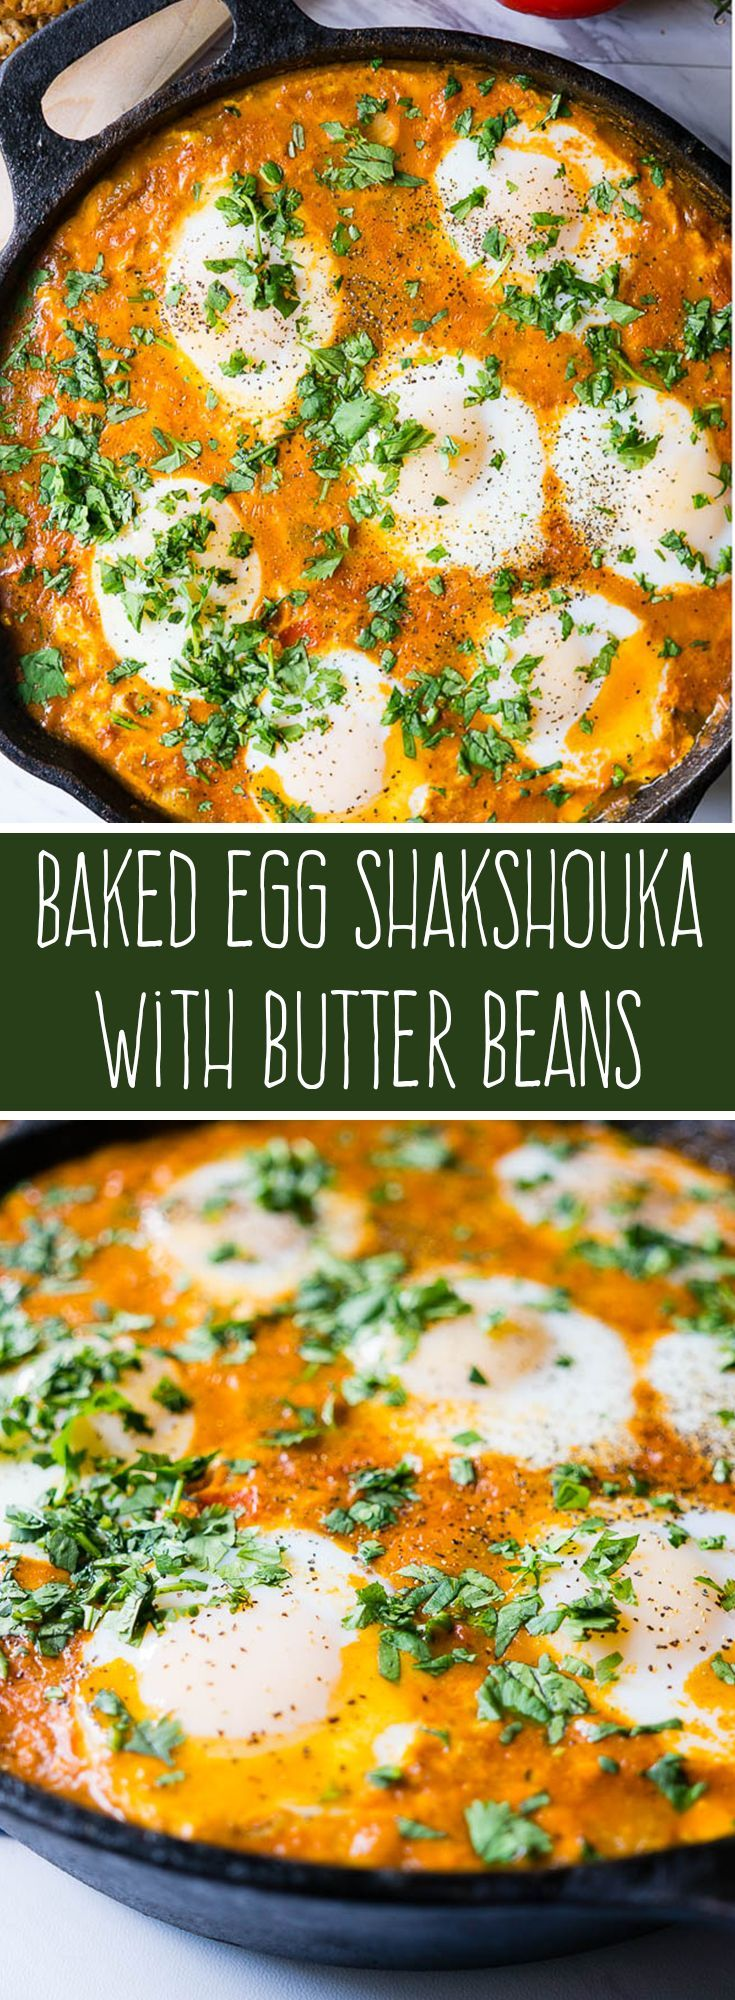 Baked Egg Shakshouka with Butter Beans. A bright and tangy Israeli tomato dish that is versatile enough to be enjoyed for brunch, lunch, or dinner!